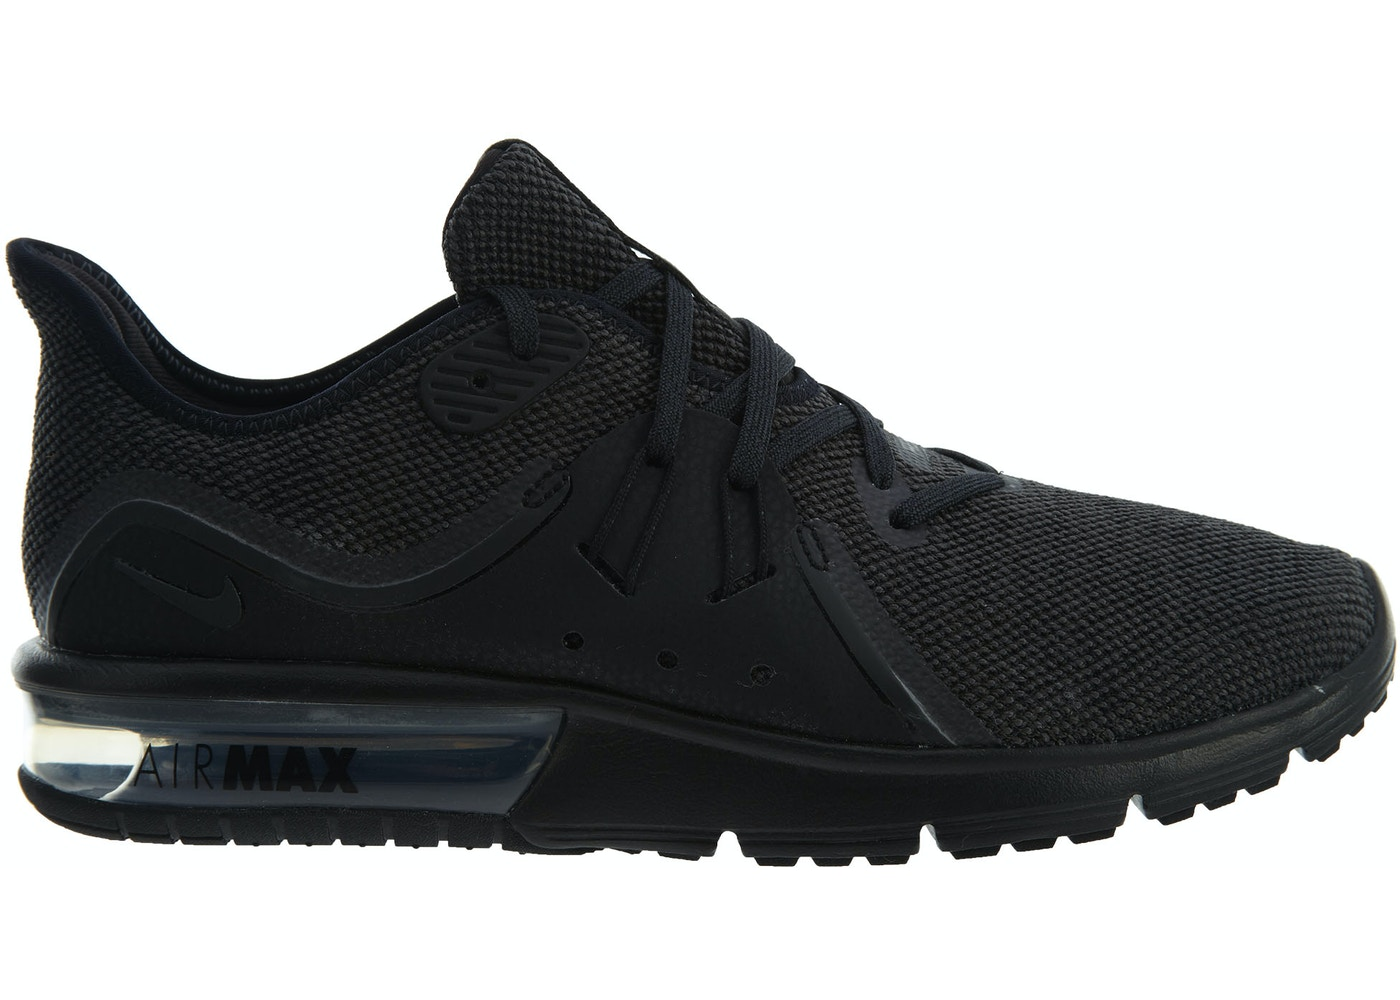 0036fd1966c Sell. or Ask. Size: 8.5. View All Bids. Air Max Sequent 3 Black Anthracite